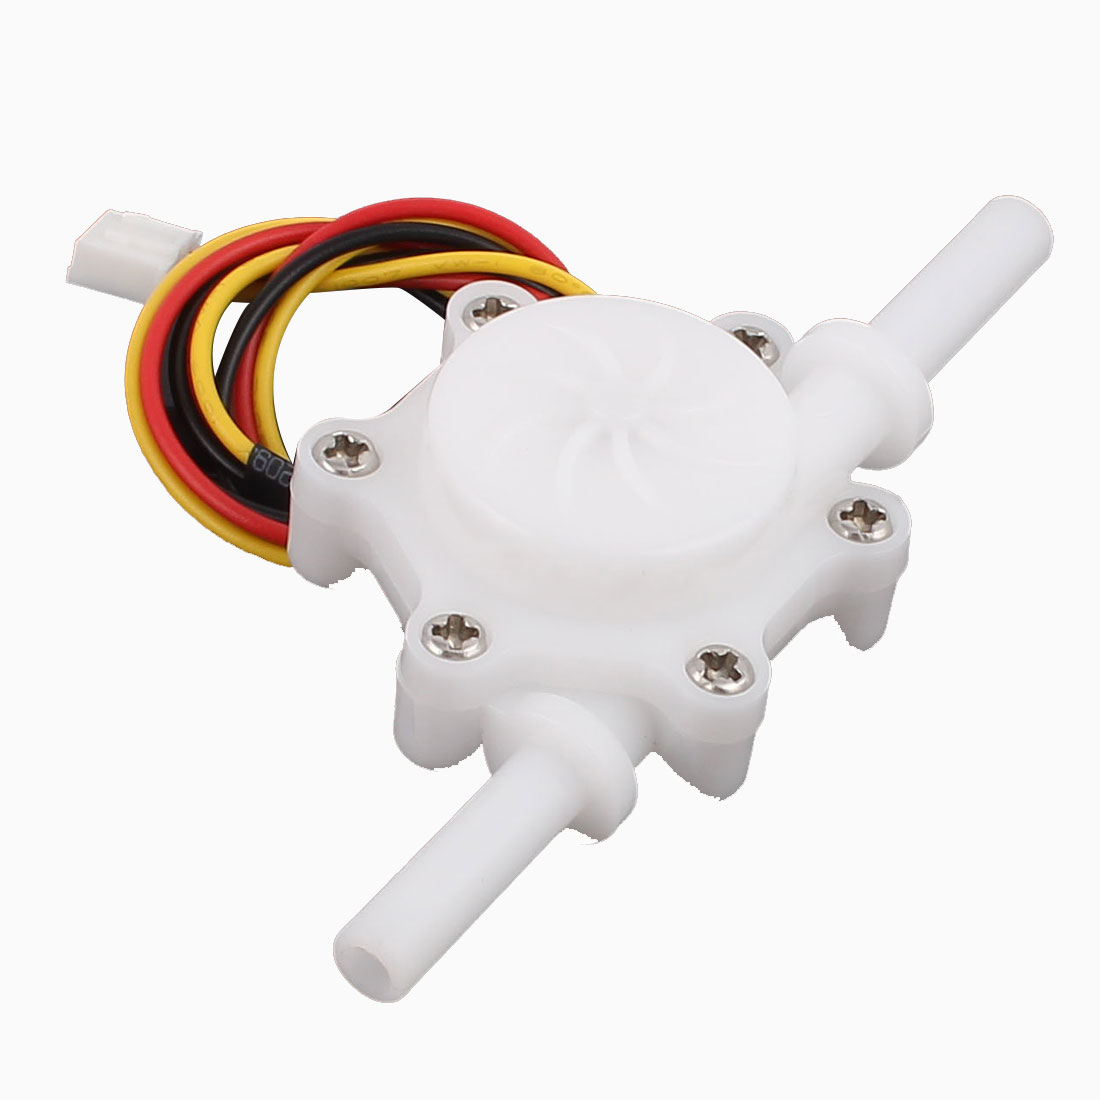 0.15-1.5L/min 6mm Outlet Outer Dia Water Flow Counter Sensor SEN-HZ06K